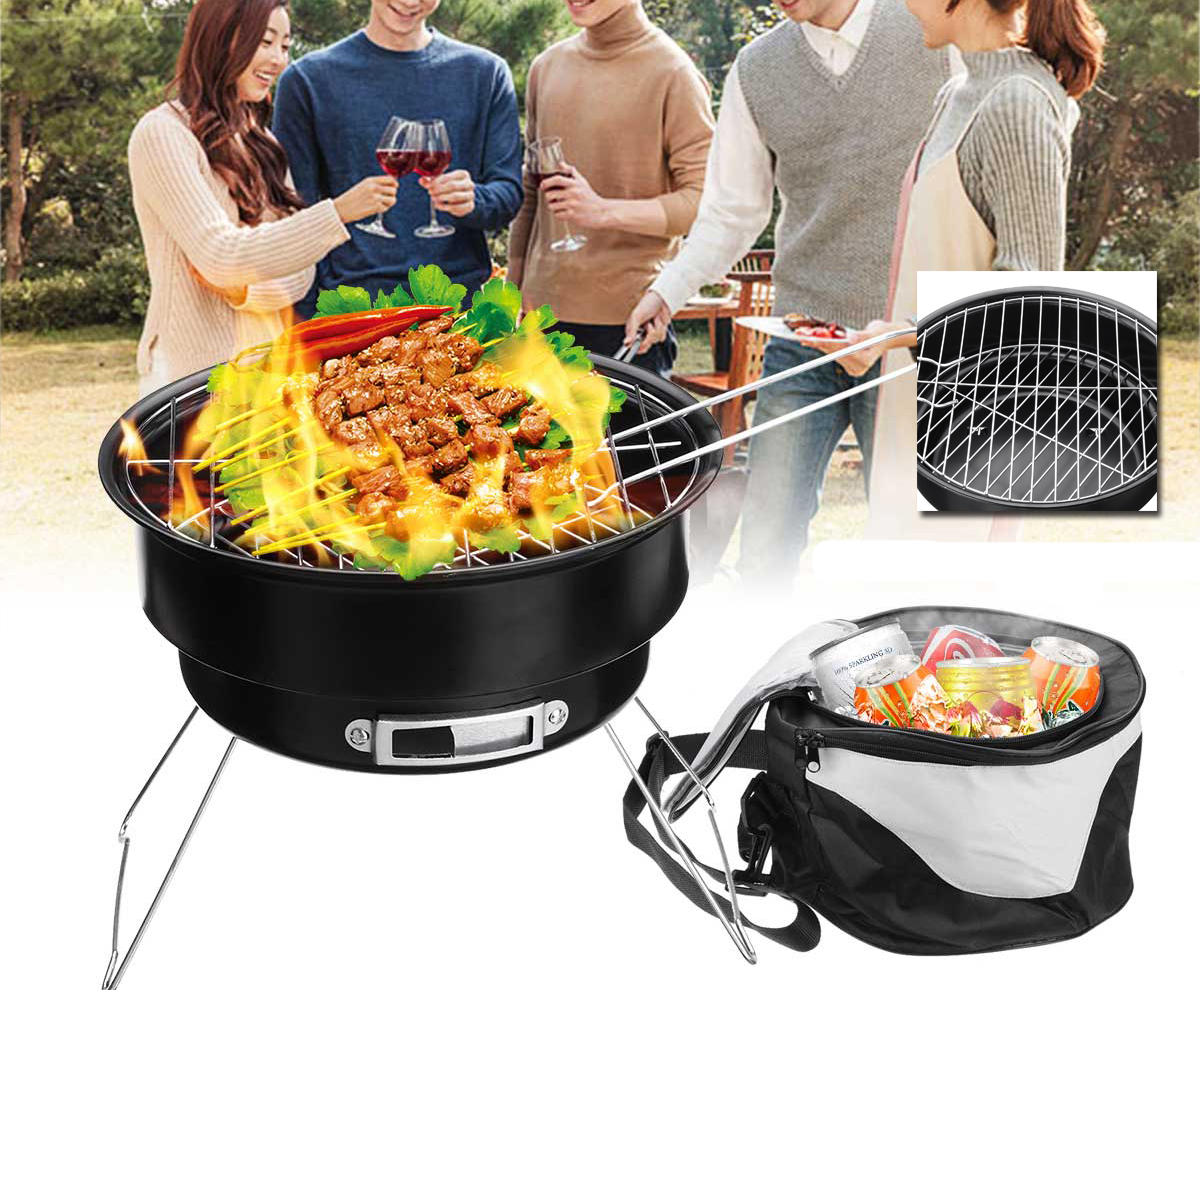 Small Barbecue Grill 2 In 1 Portable Barbecue Oven Folding Bbq Grill With Cooler Bag Camping Hiking Picnic